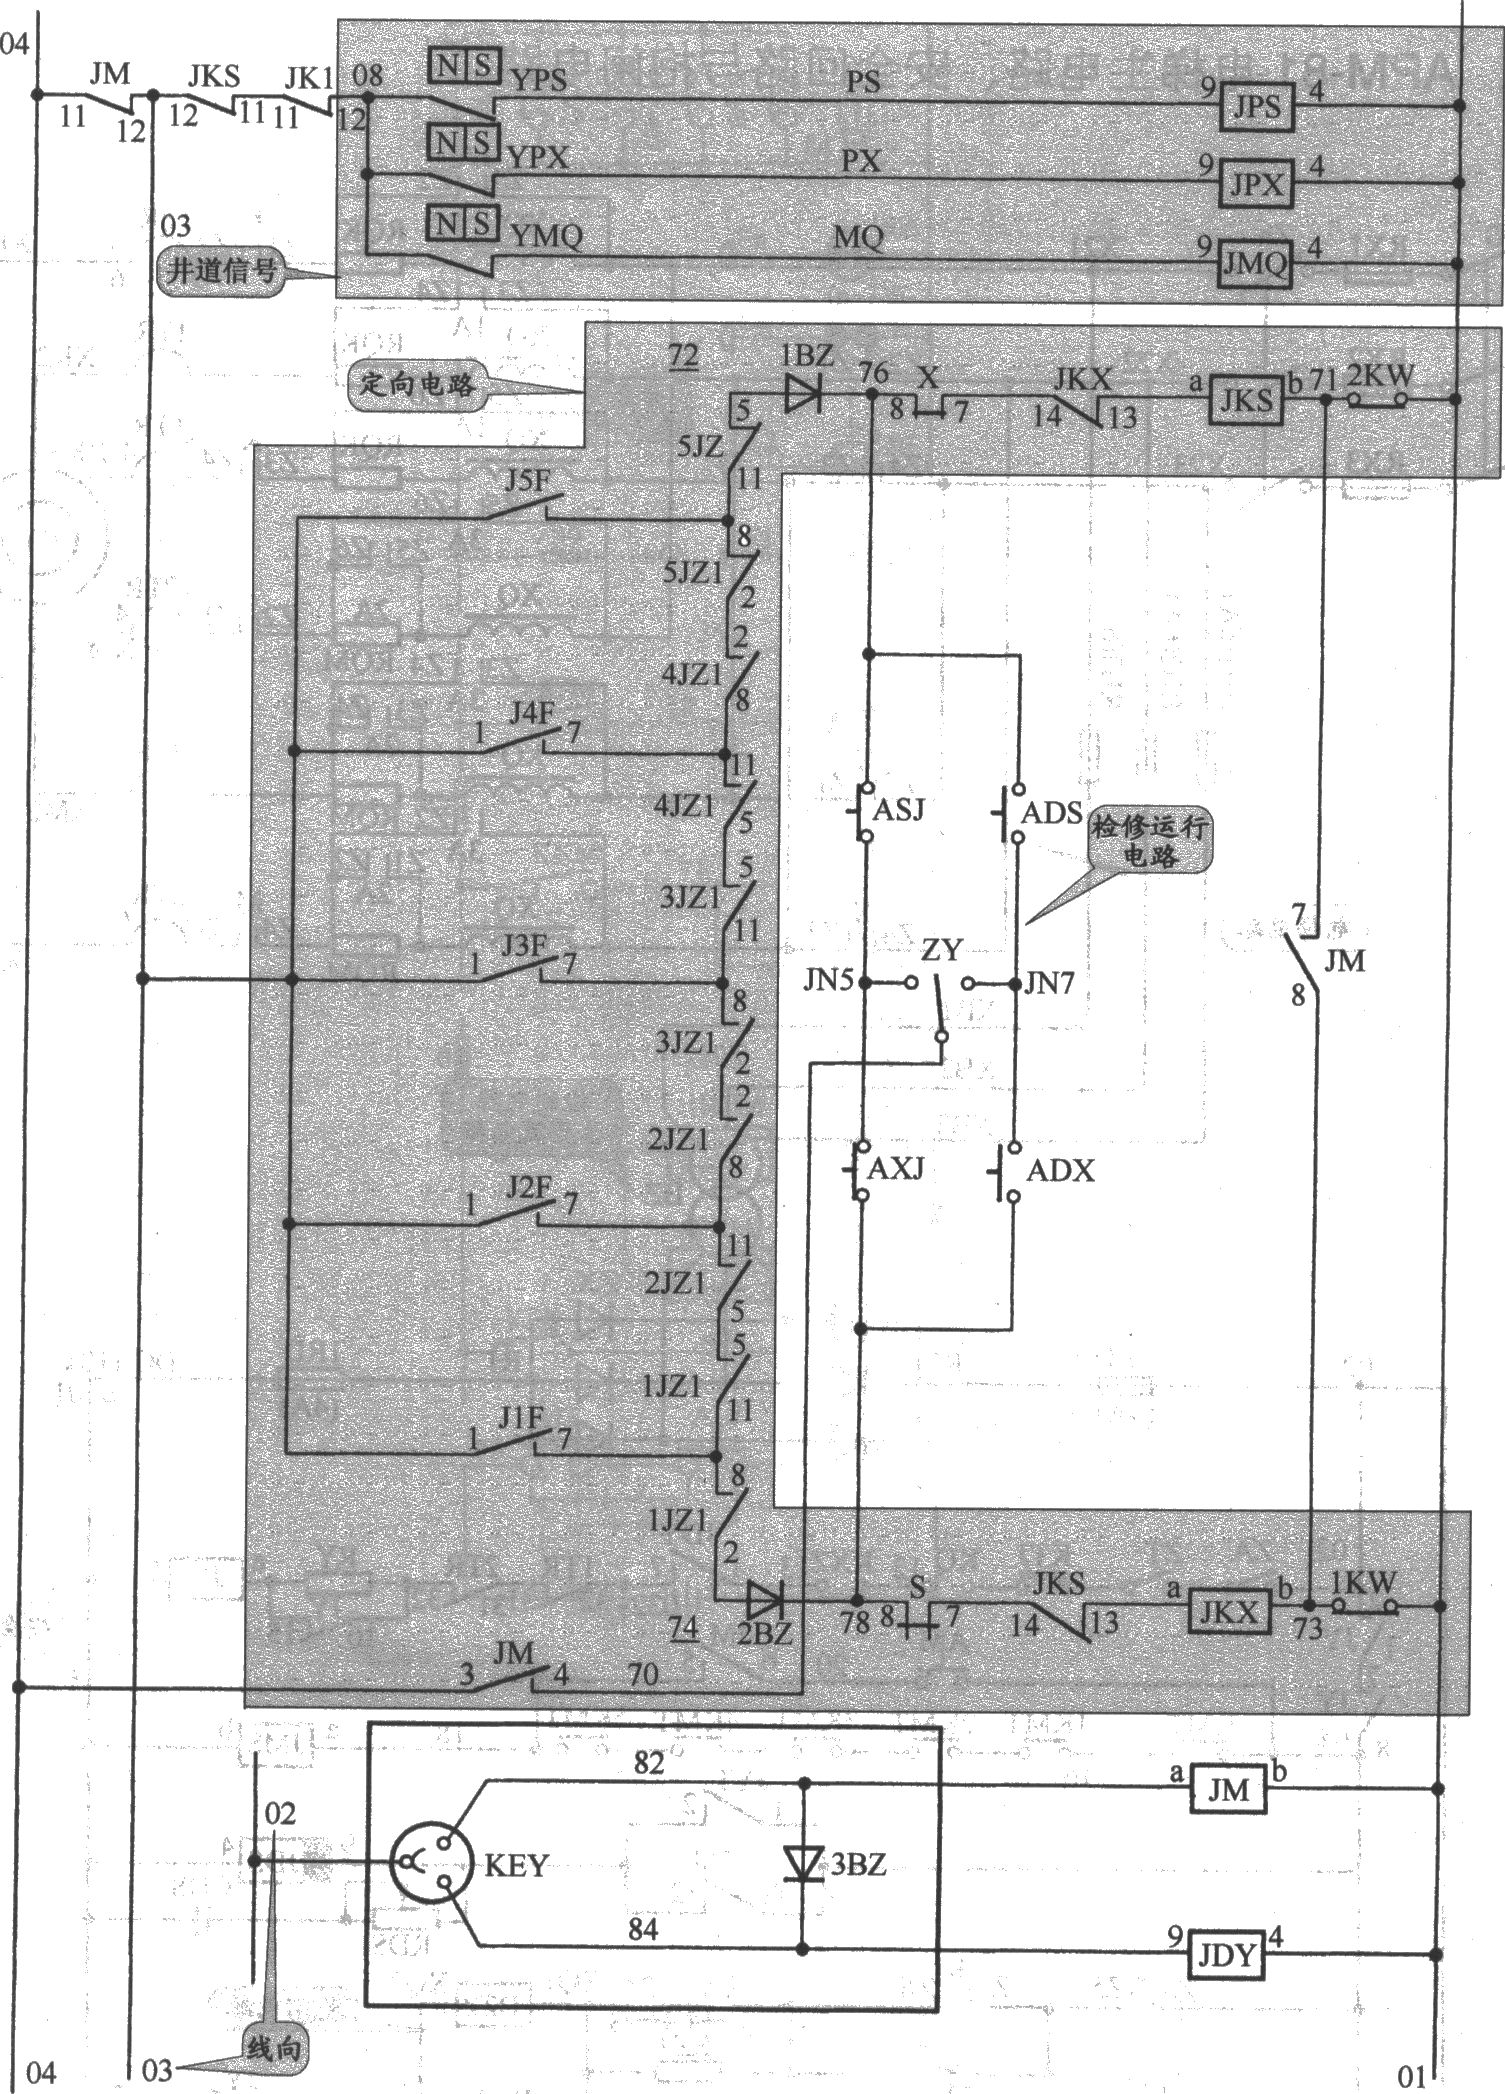 Otis Wiring Diagram Lift Elevator Article About By The Diagrams